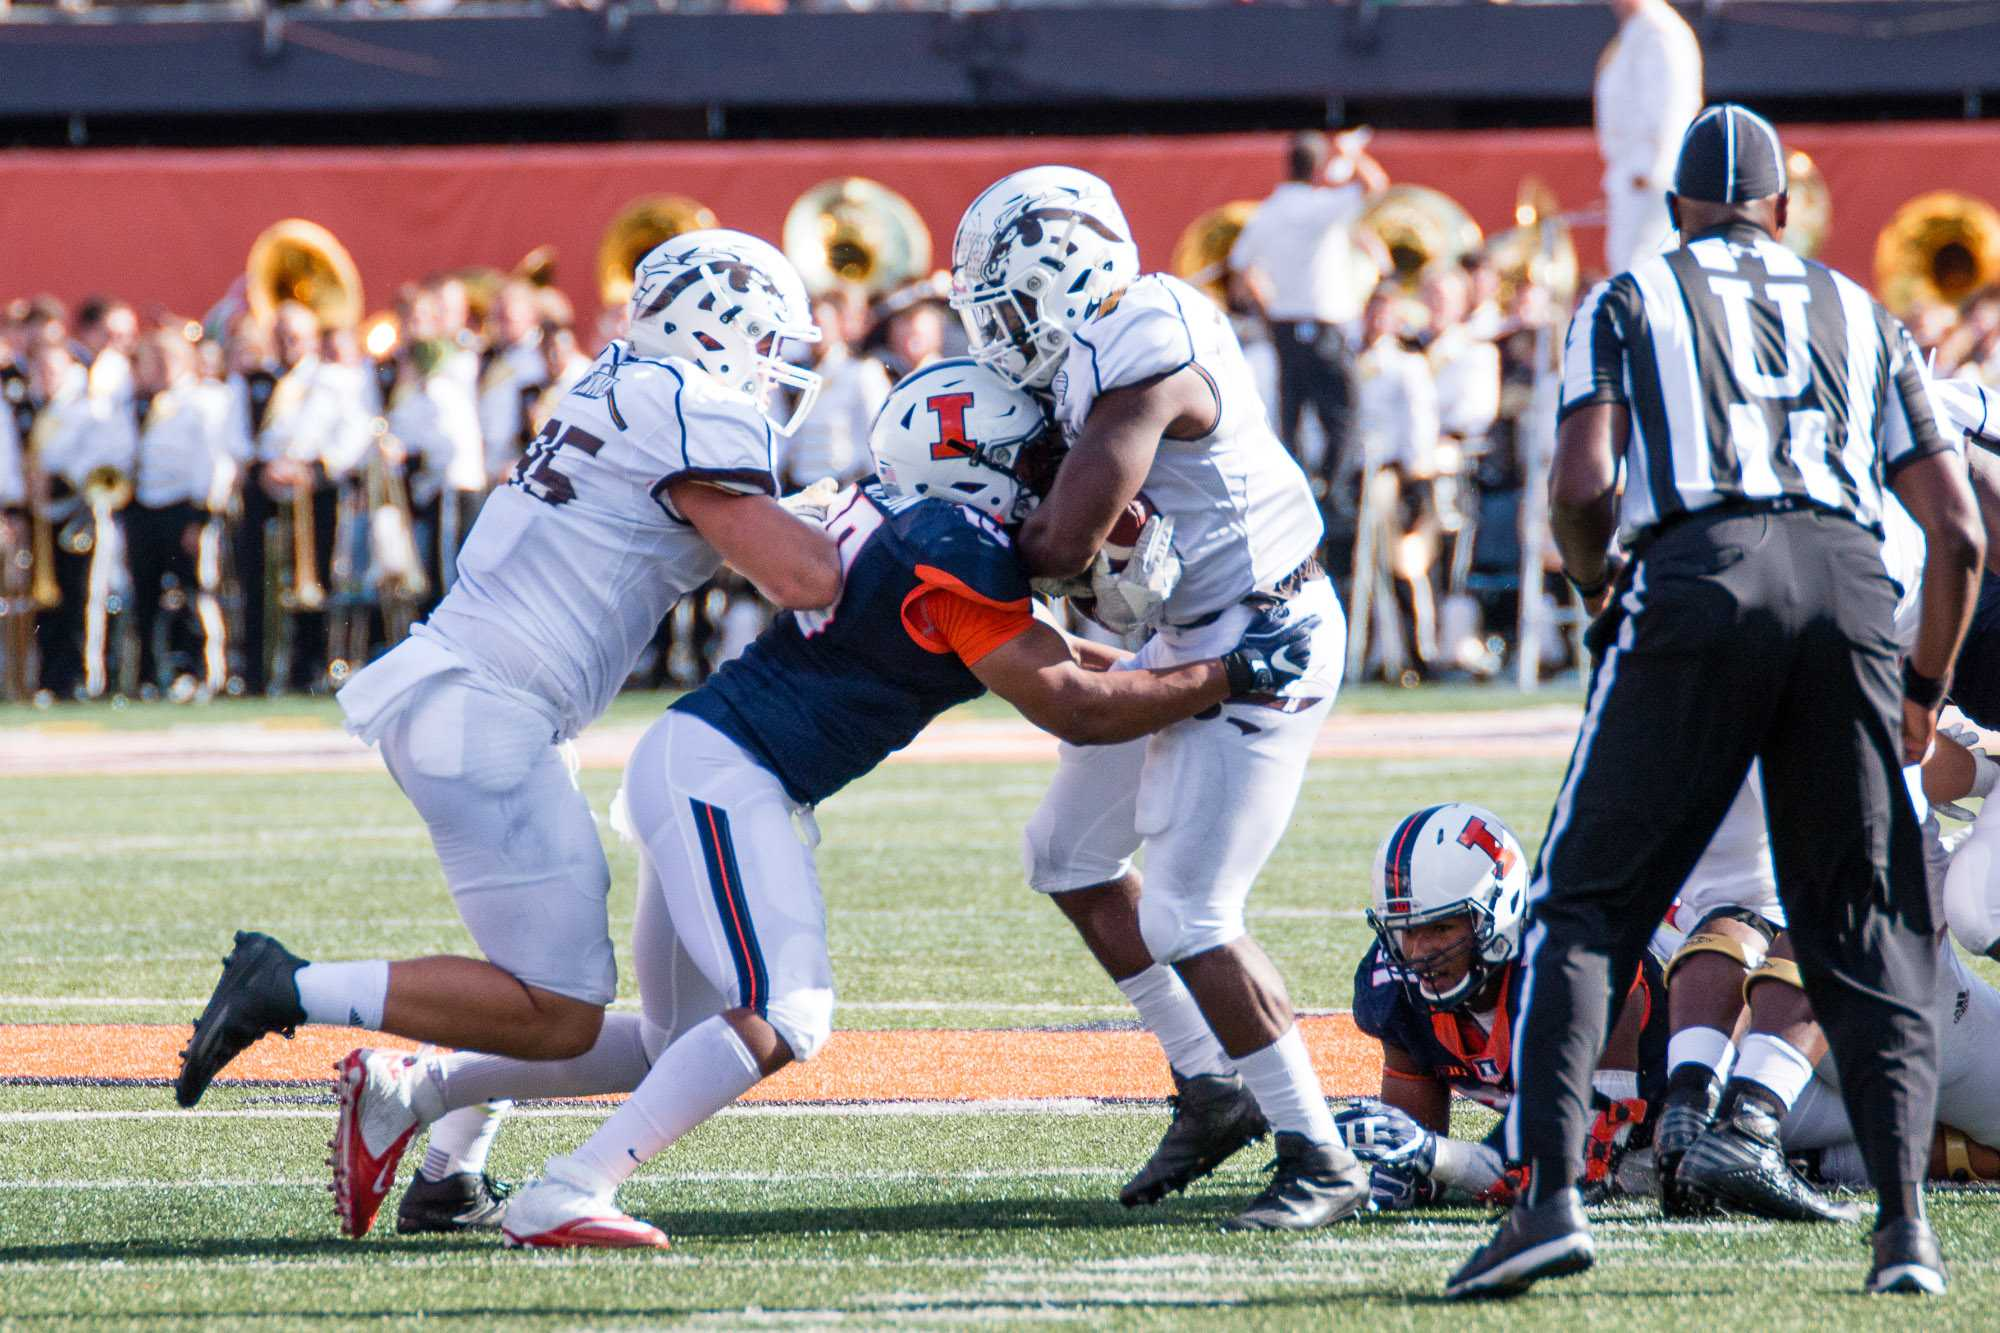 Illinois linebacker Hardy Nickerson (10) tackles Western Michigan running back Jarvion Franklin (31) during the the game against Western Michigan at Memorial Stadium on Saturday, September 17. The Illini lost 34-10.